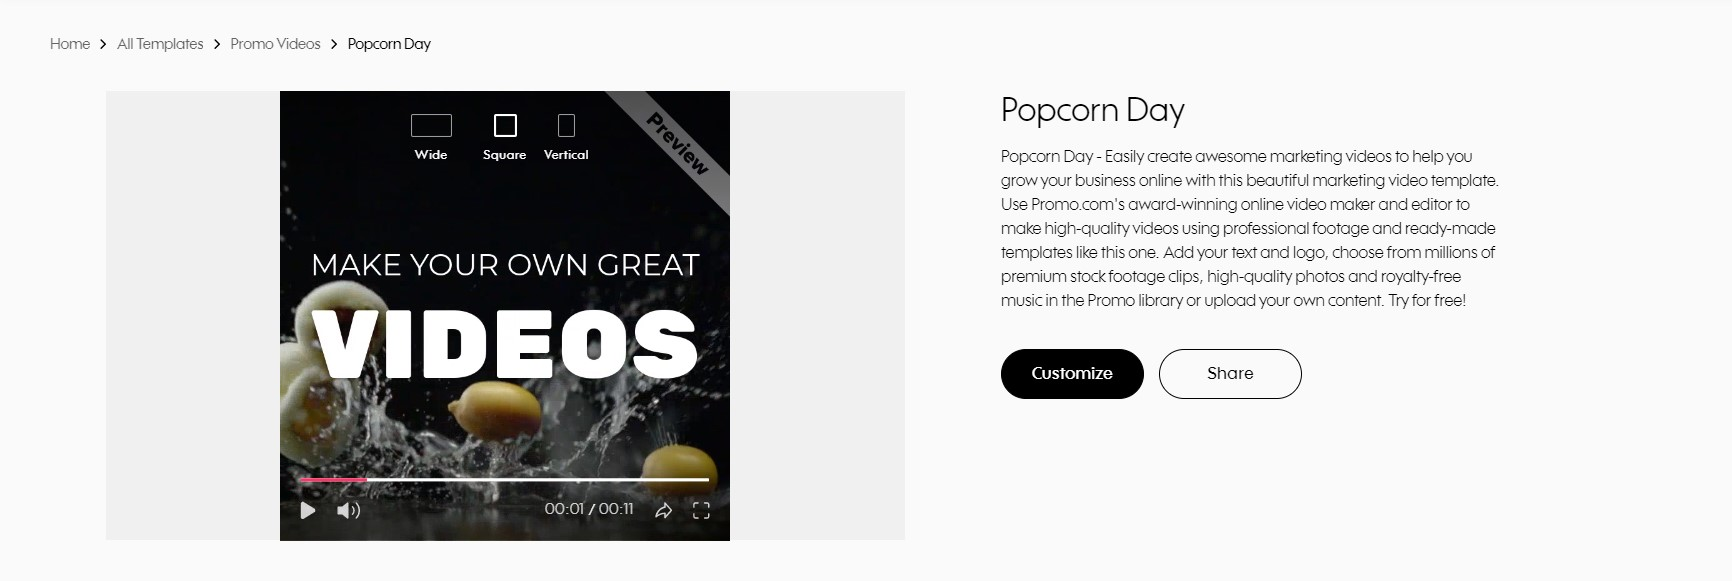 Customize your marketing video at Promo